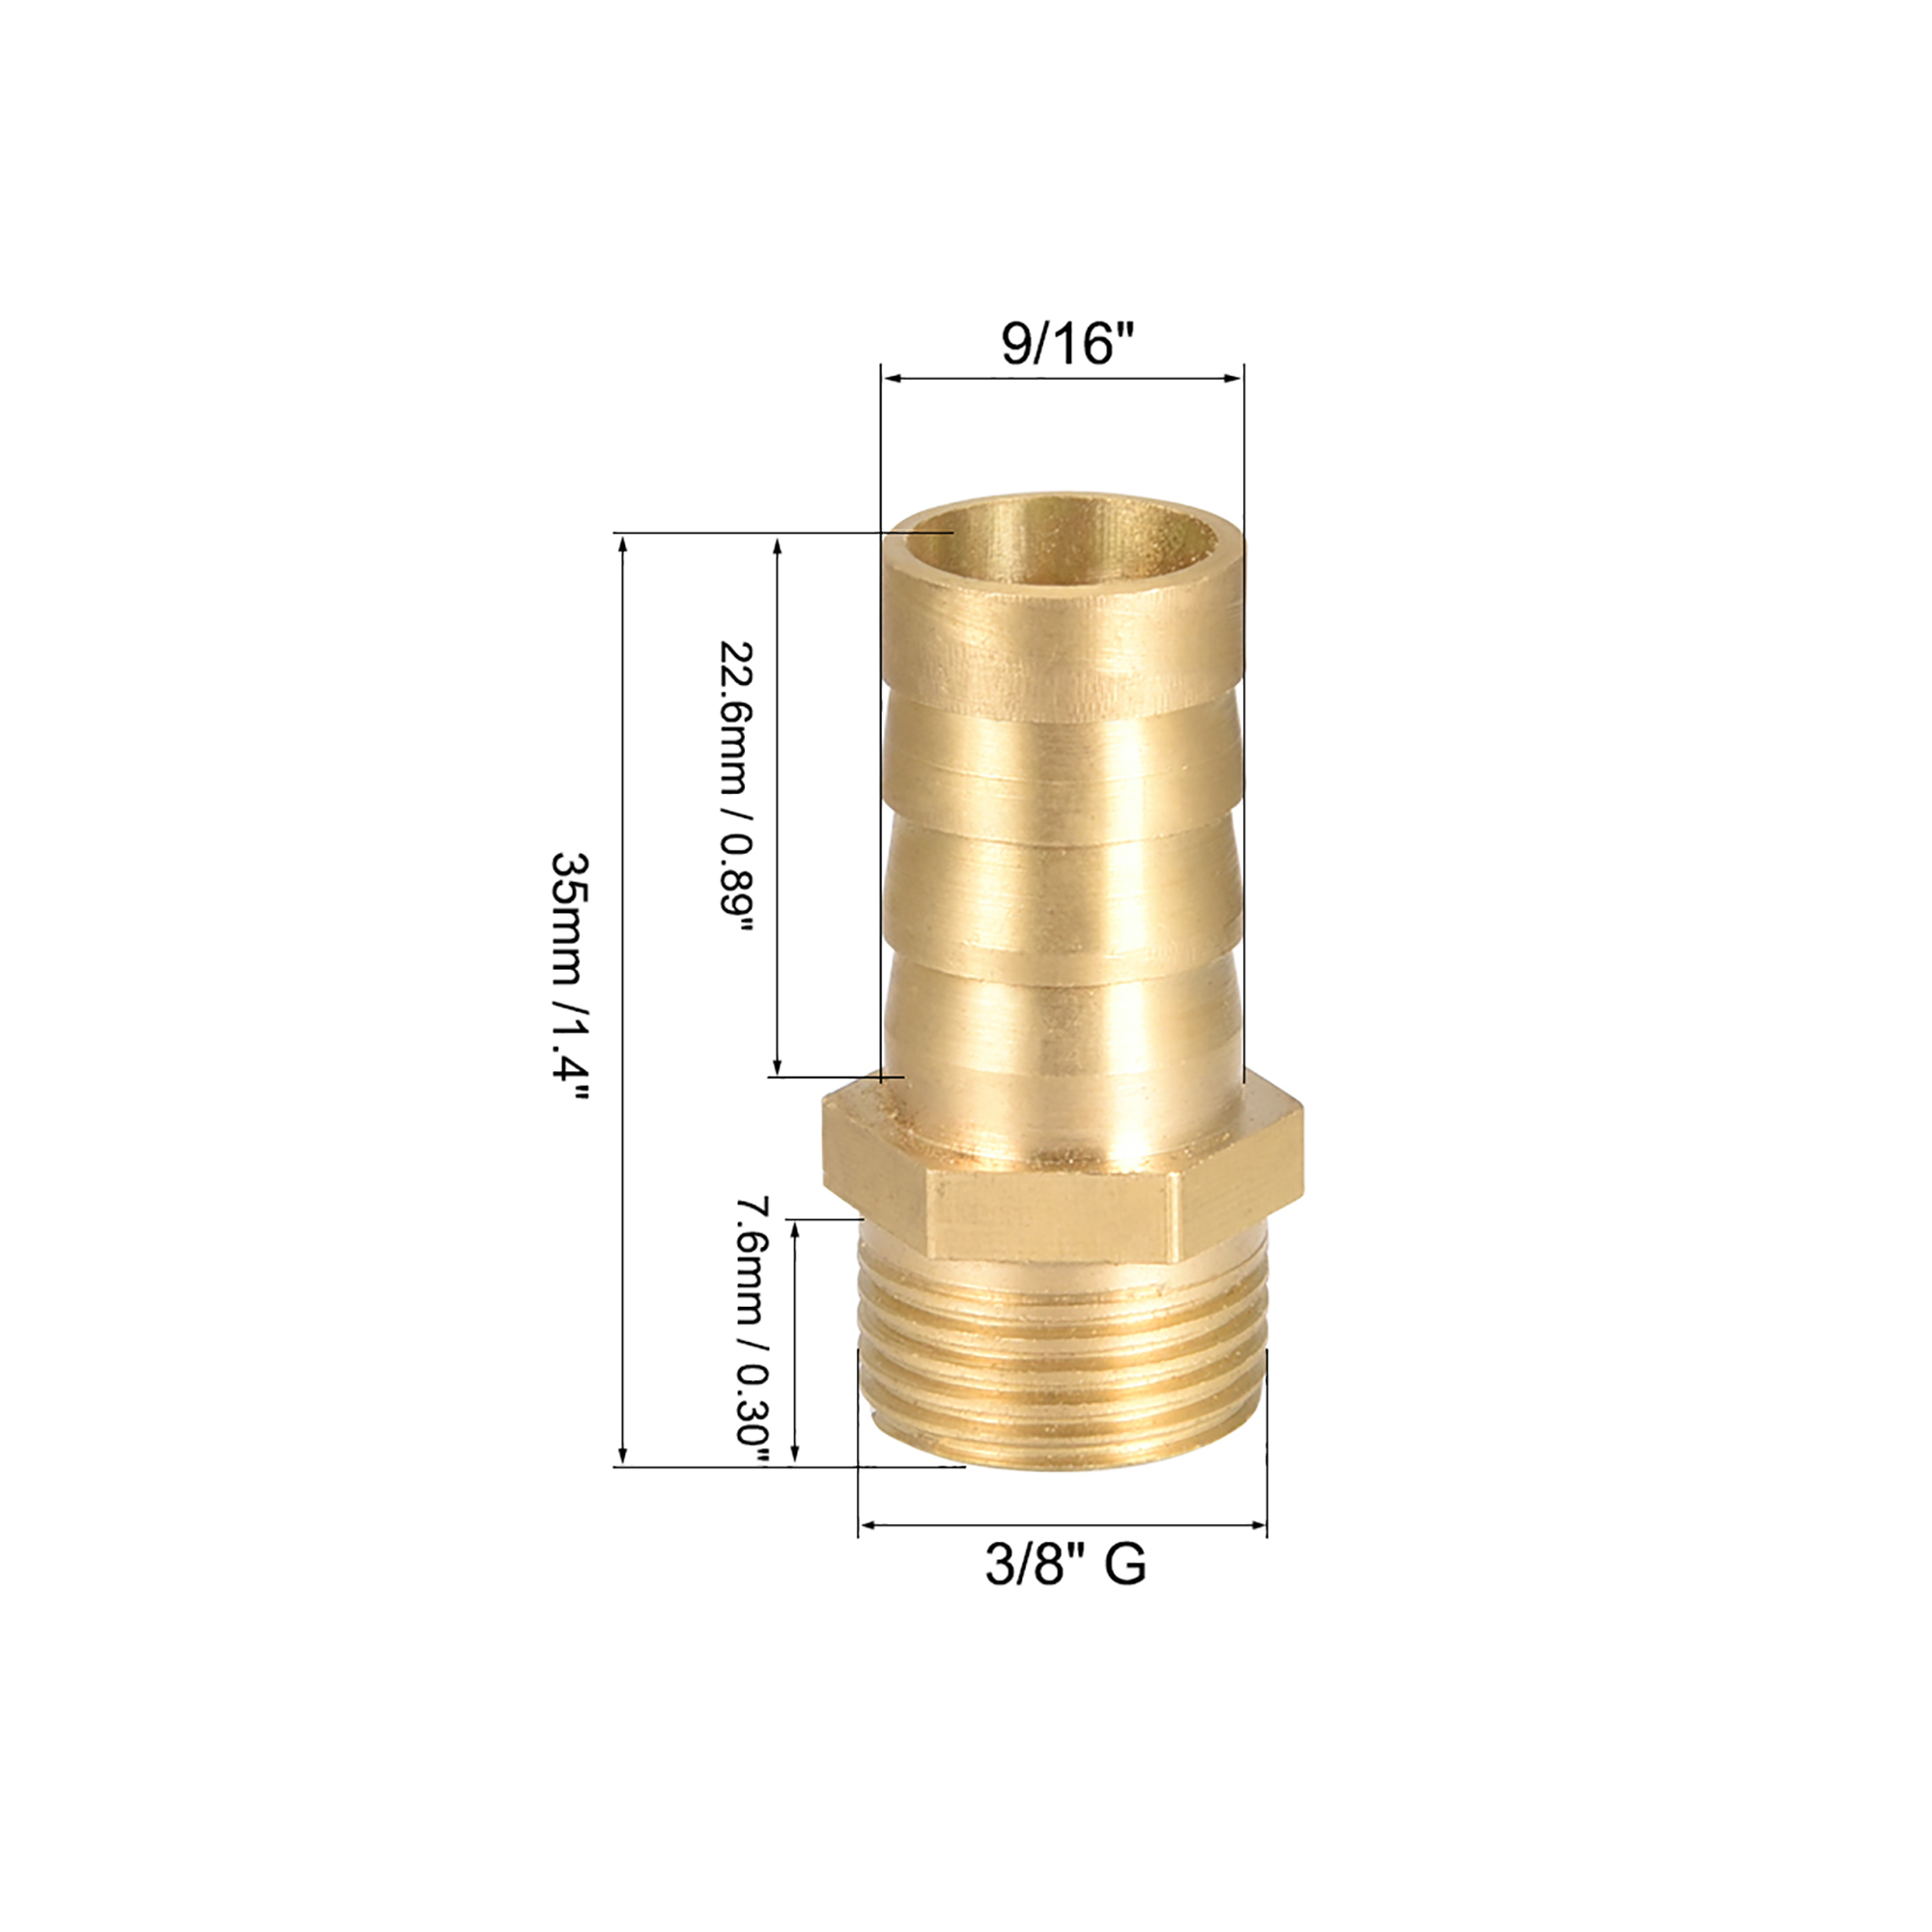 "Brass Barb Hose Fitting Connector Adapter 14mm Barbed x 3/8"" G Male Pipe 5Pcs - image 1 of 4"